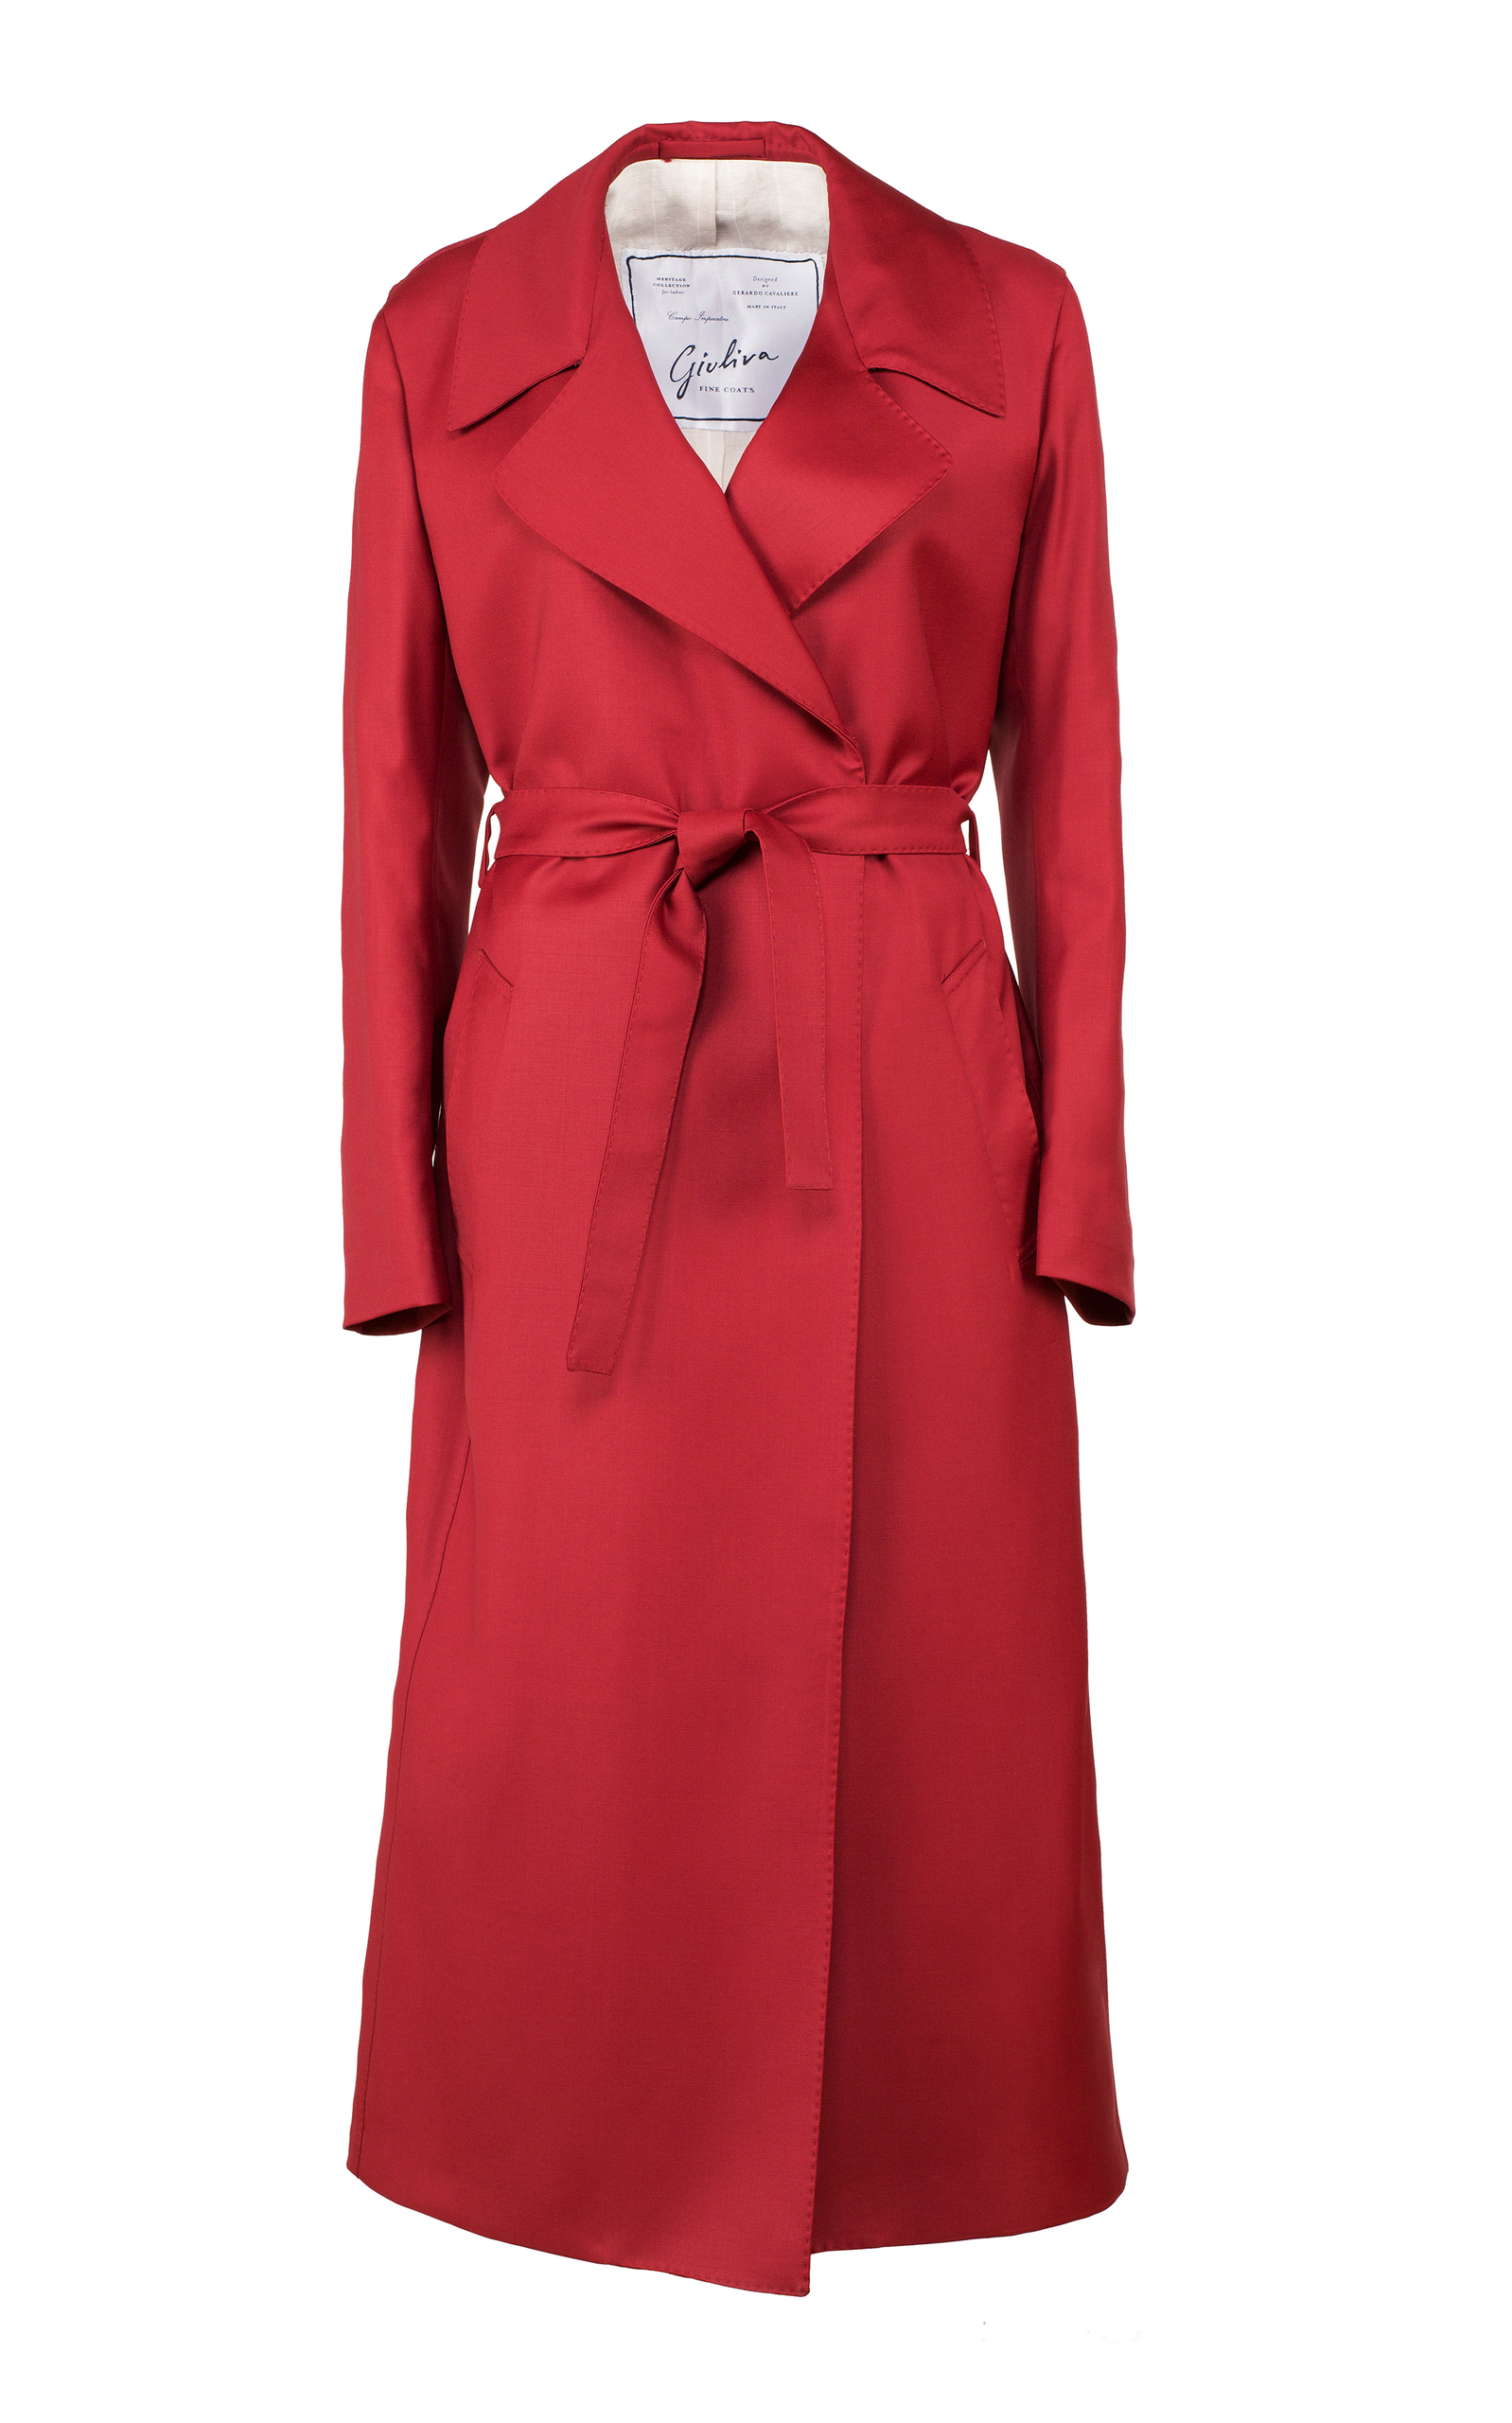 GIULIVA HERITAGE COLLECTION Double Breasted Wool Dress Coat in Red